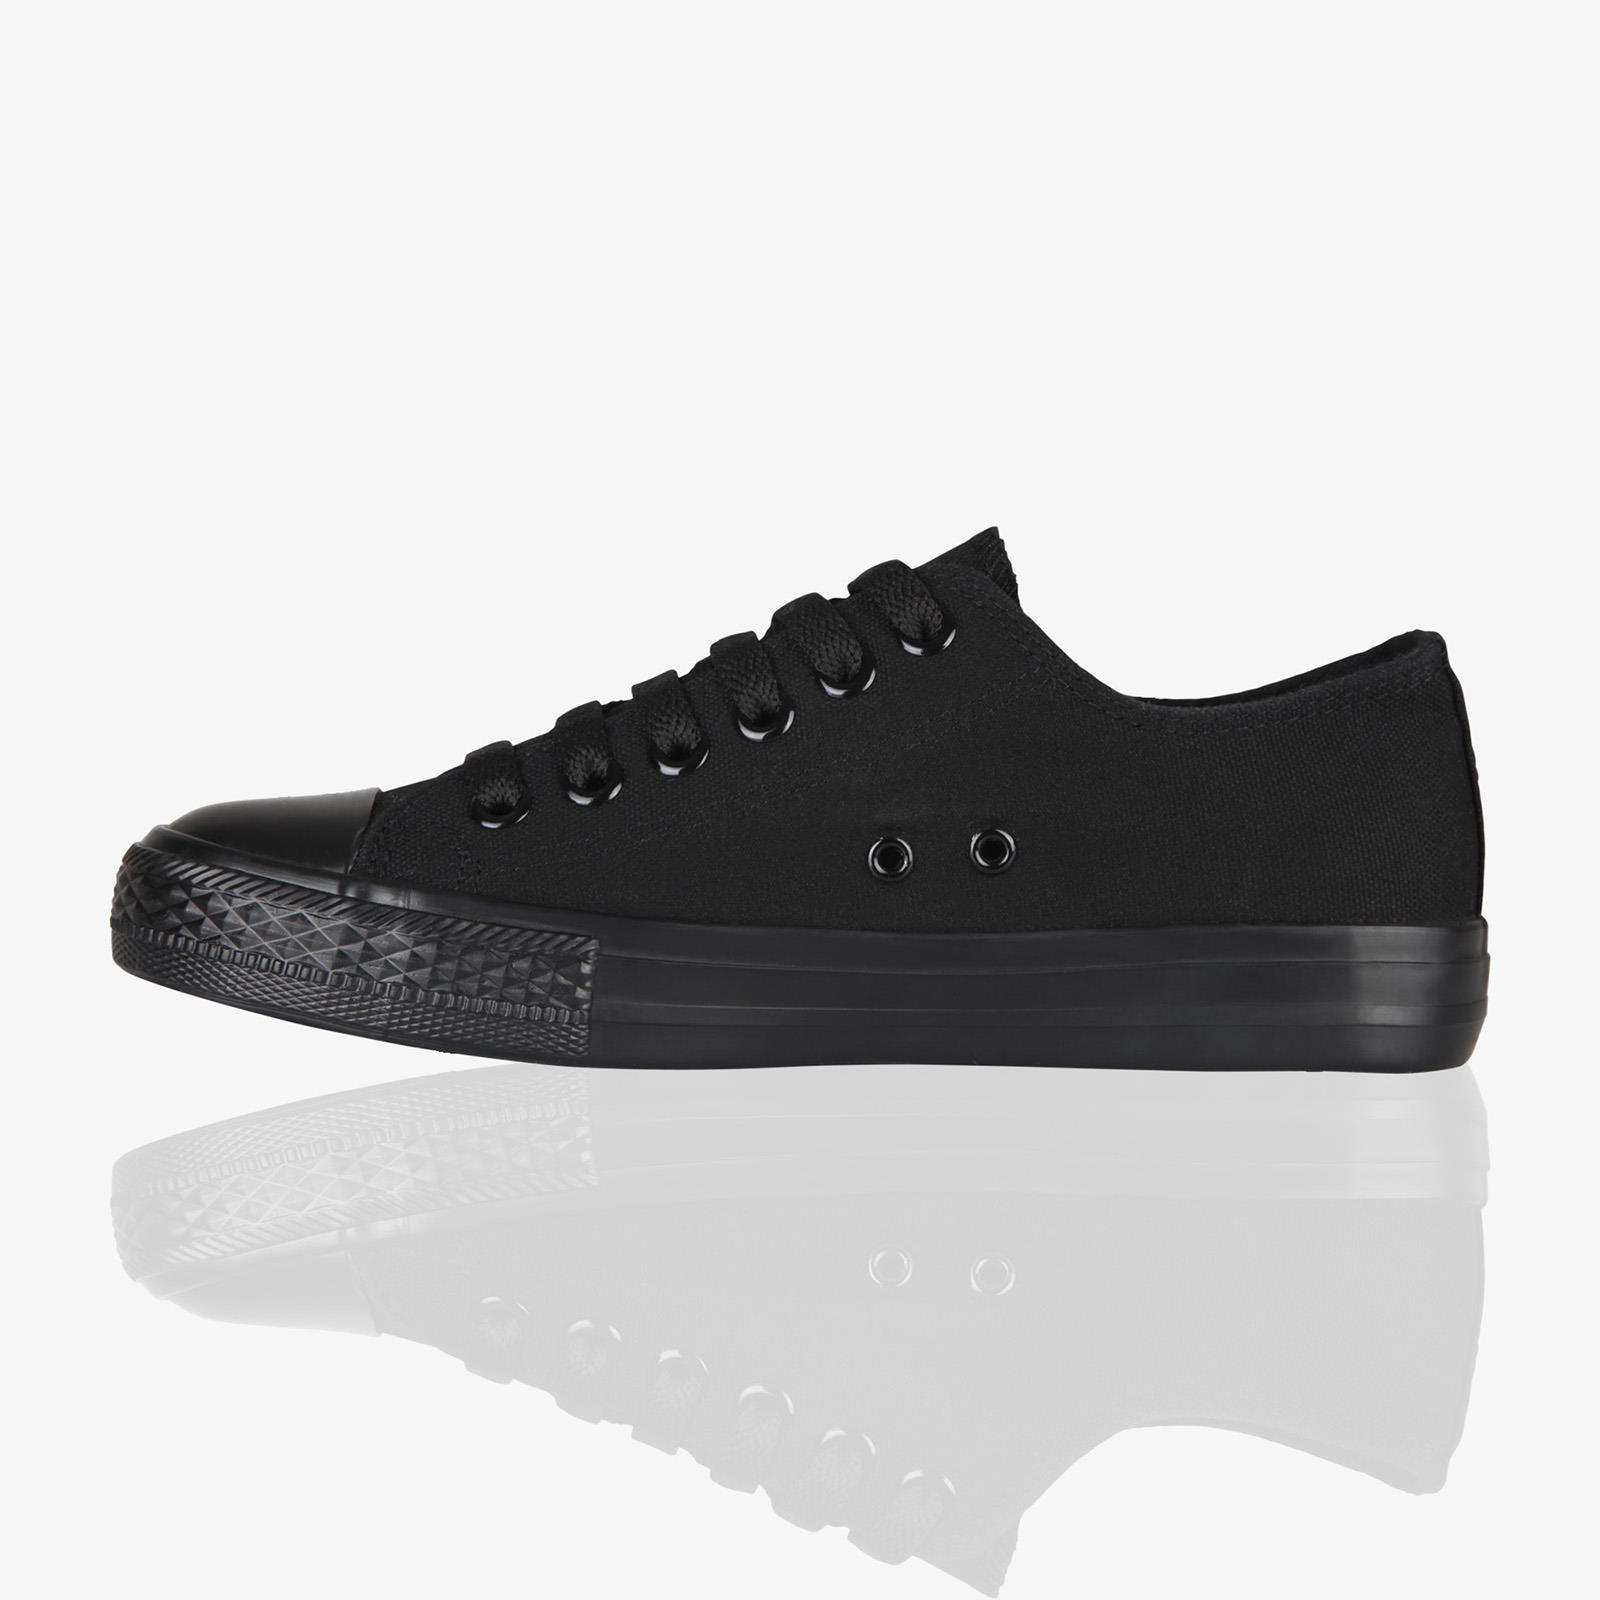 Women Low Top Trainers Sneakers Classic Canvas Lace Up Pumps Flat Shoe Sizes 3-8